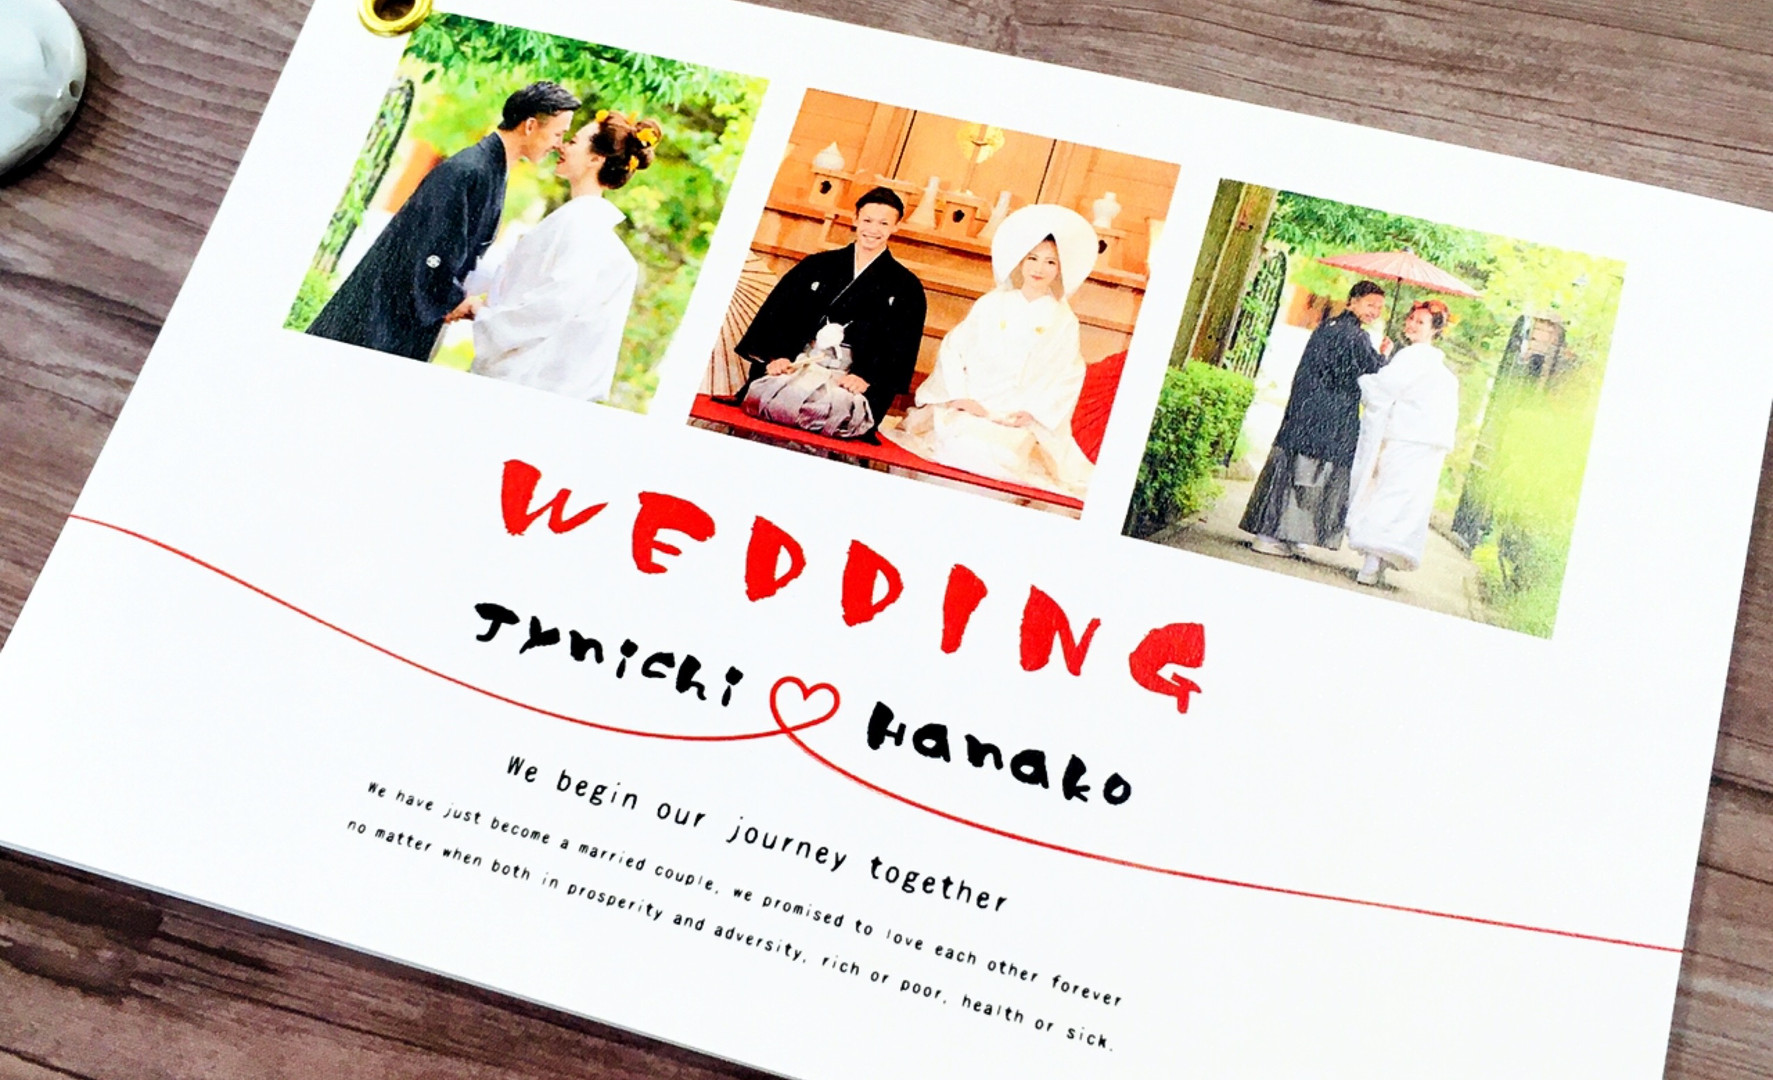 Just married デザイン9-E-2.jpg